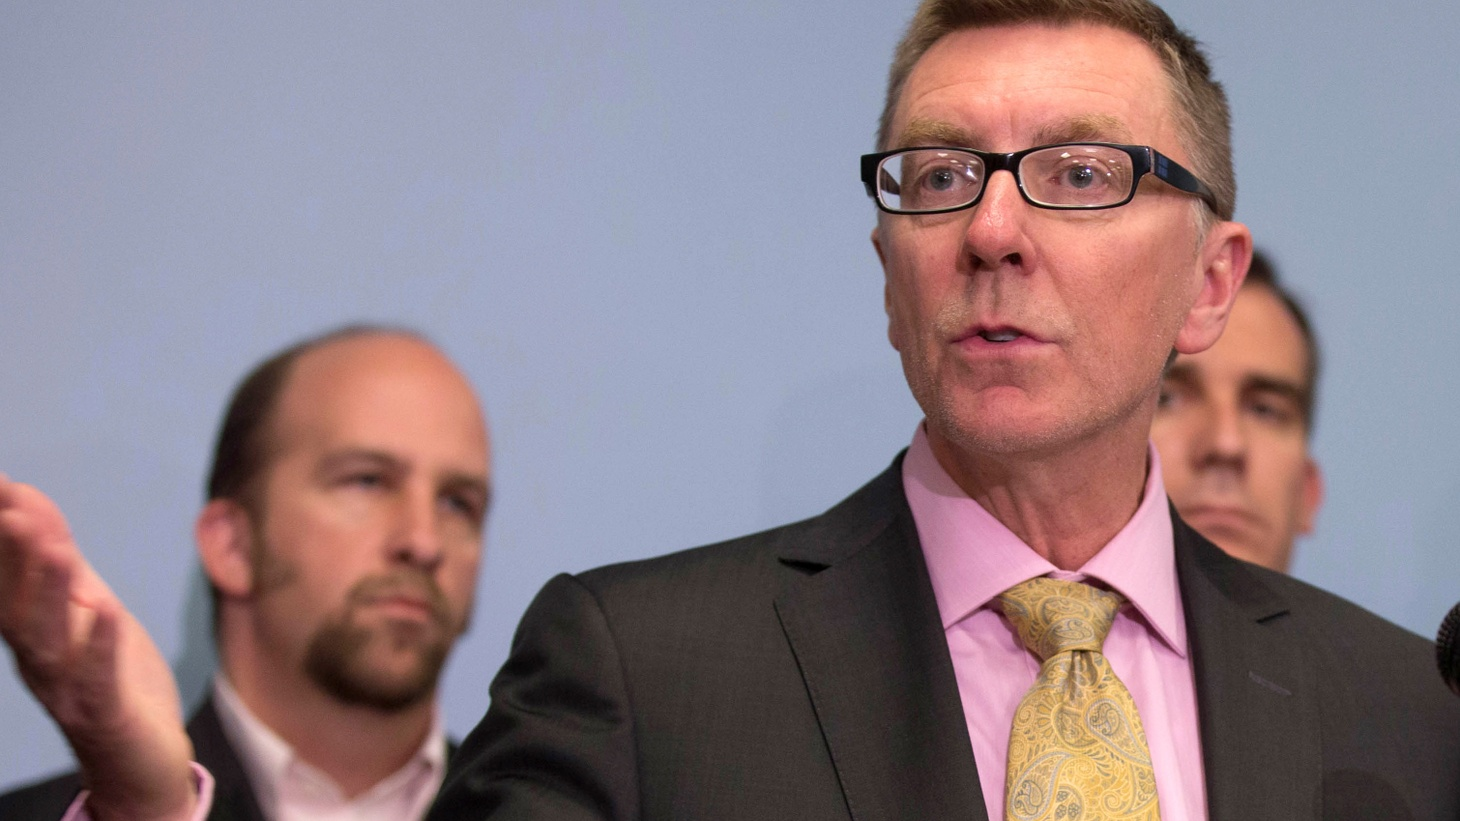 Los Angeles Unified School District Superintendent John Deasy resigned this morning. We look at what made him such a divisive figure, and what's next for the district.